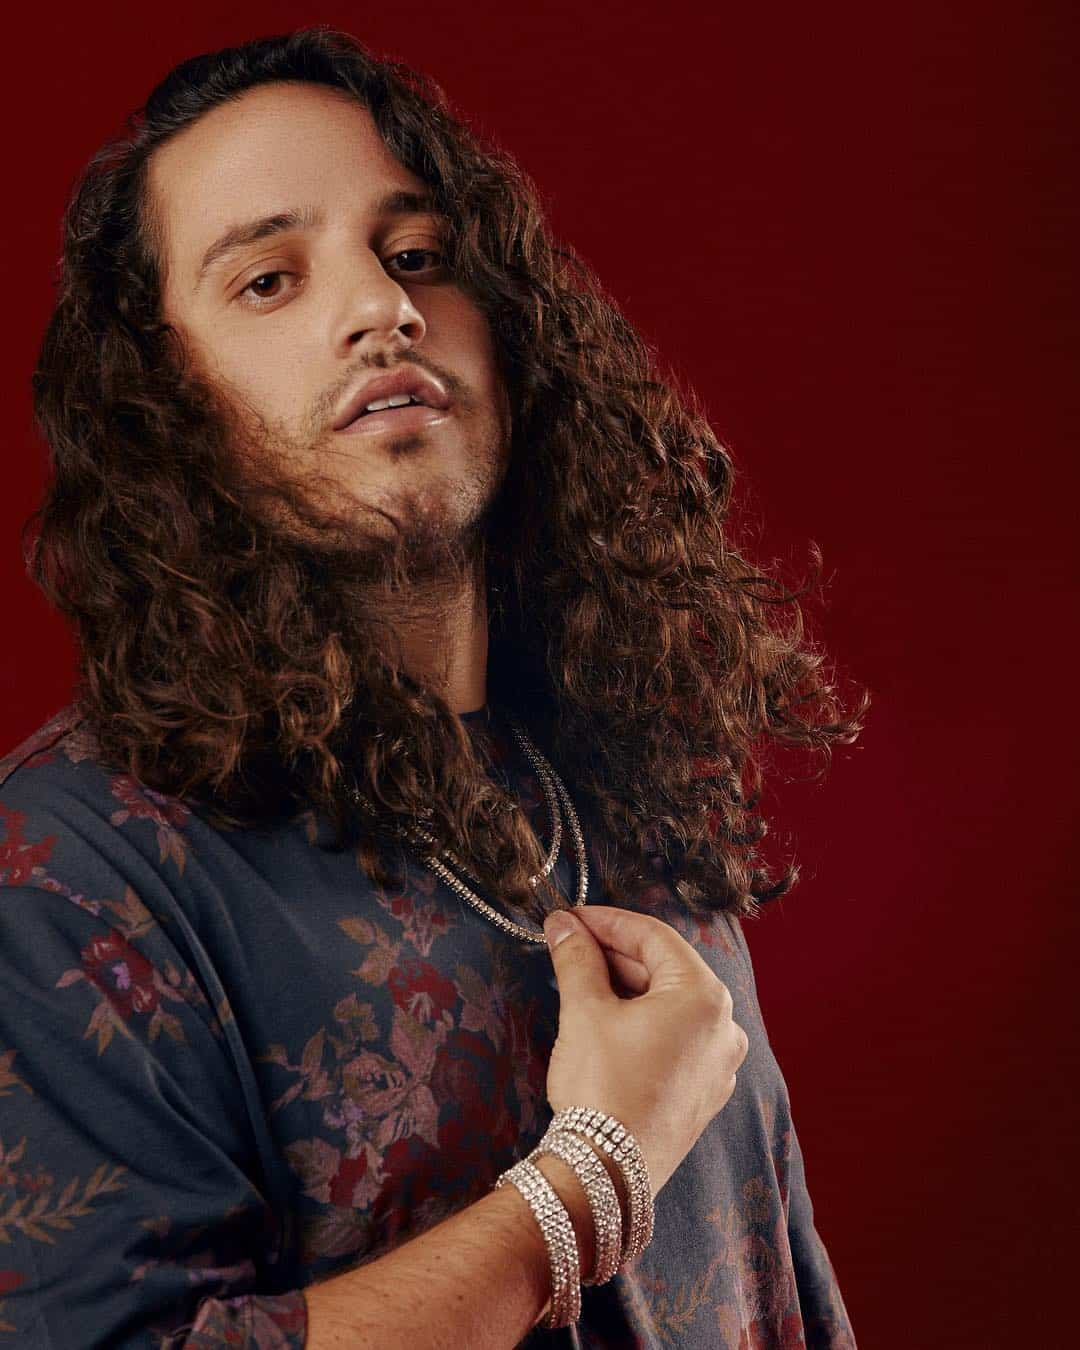 Russ (Rapper) Wiki, Age, Biography, Girlfriend, Net Worth & More 5